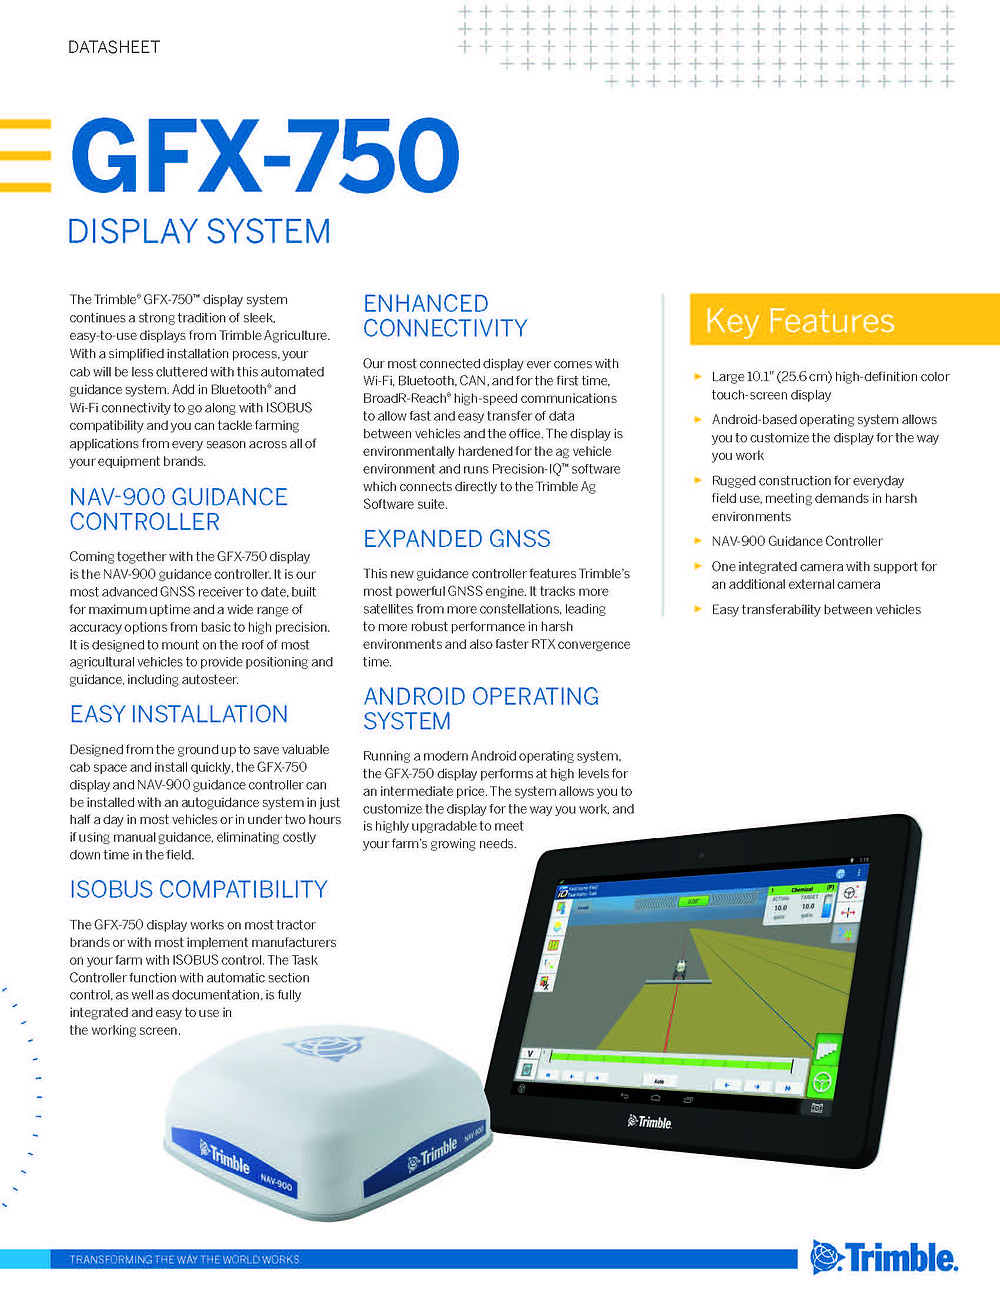 Trimble GFX 750 Display Info